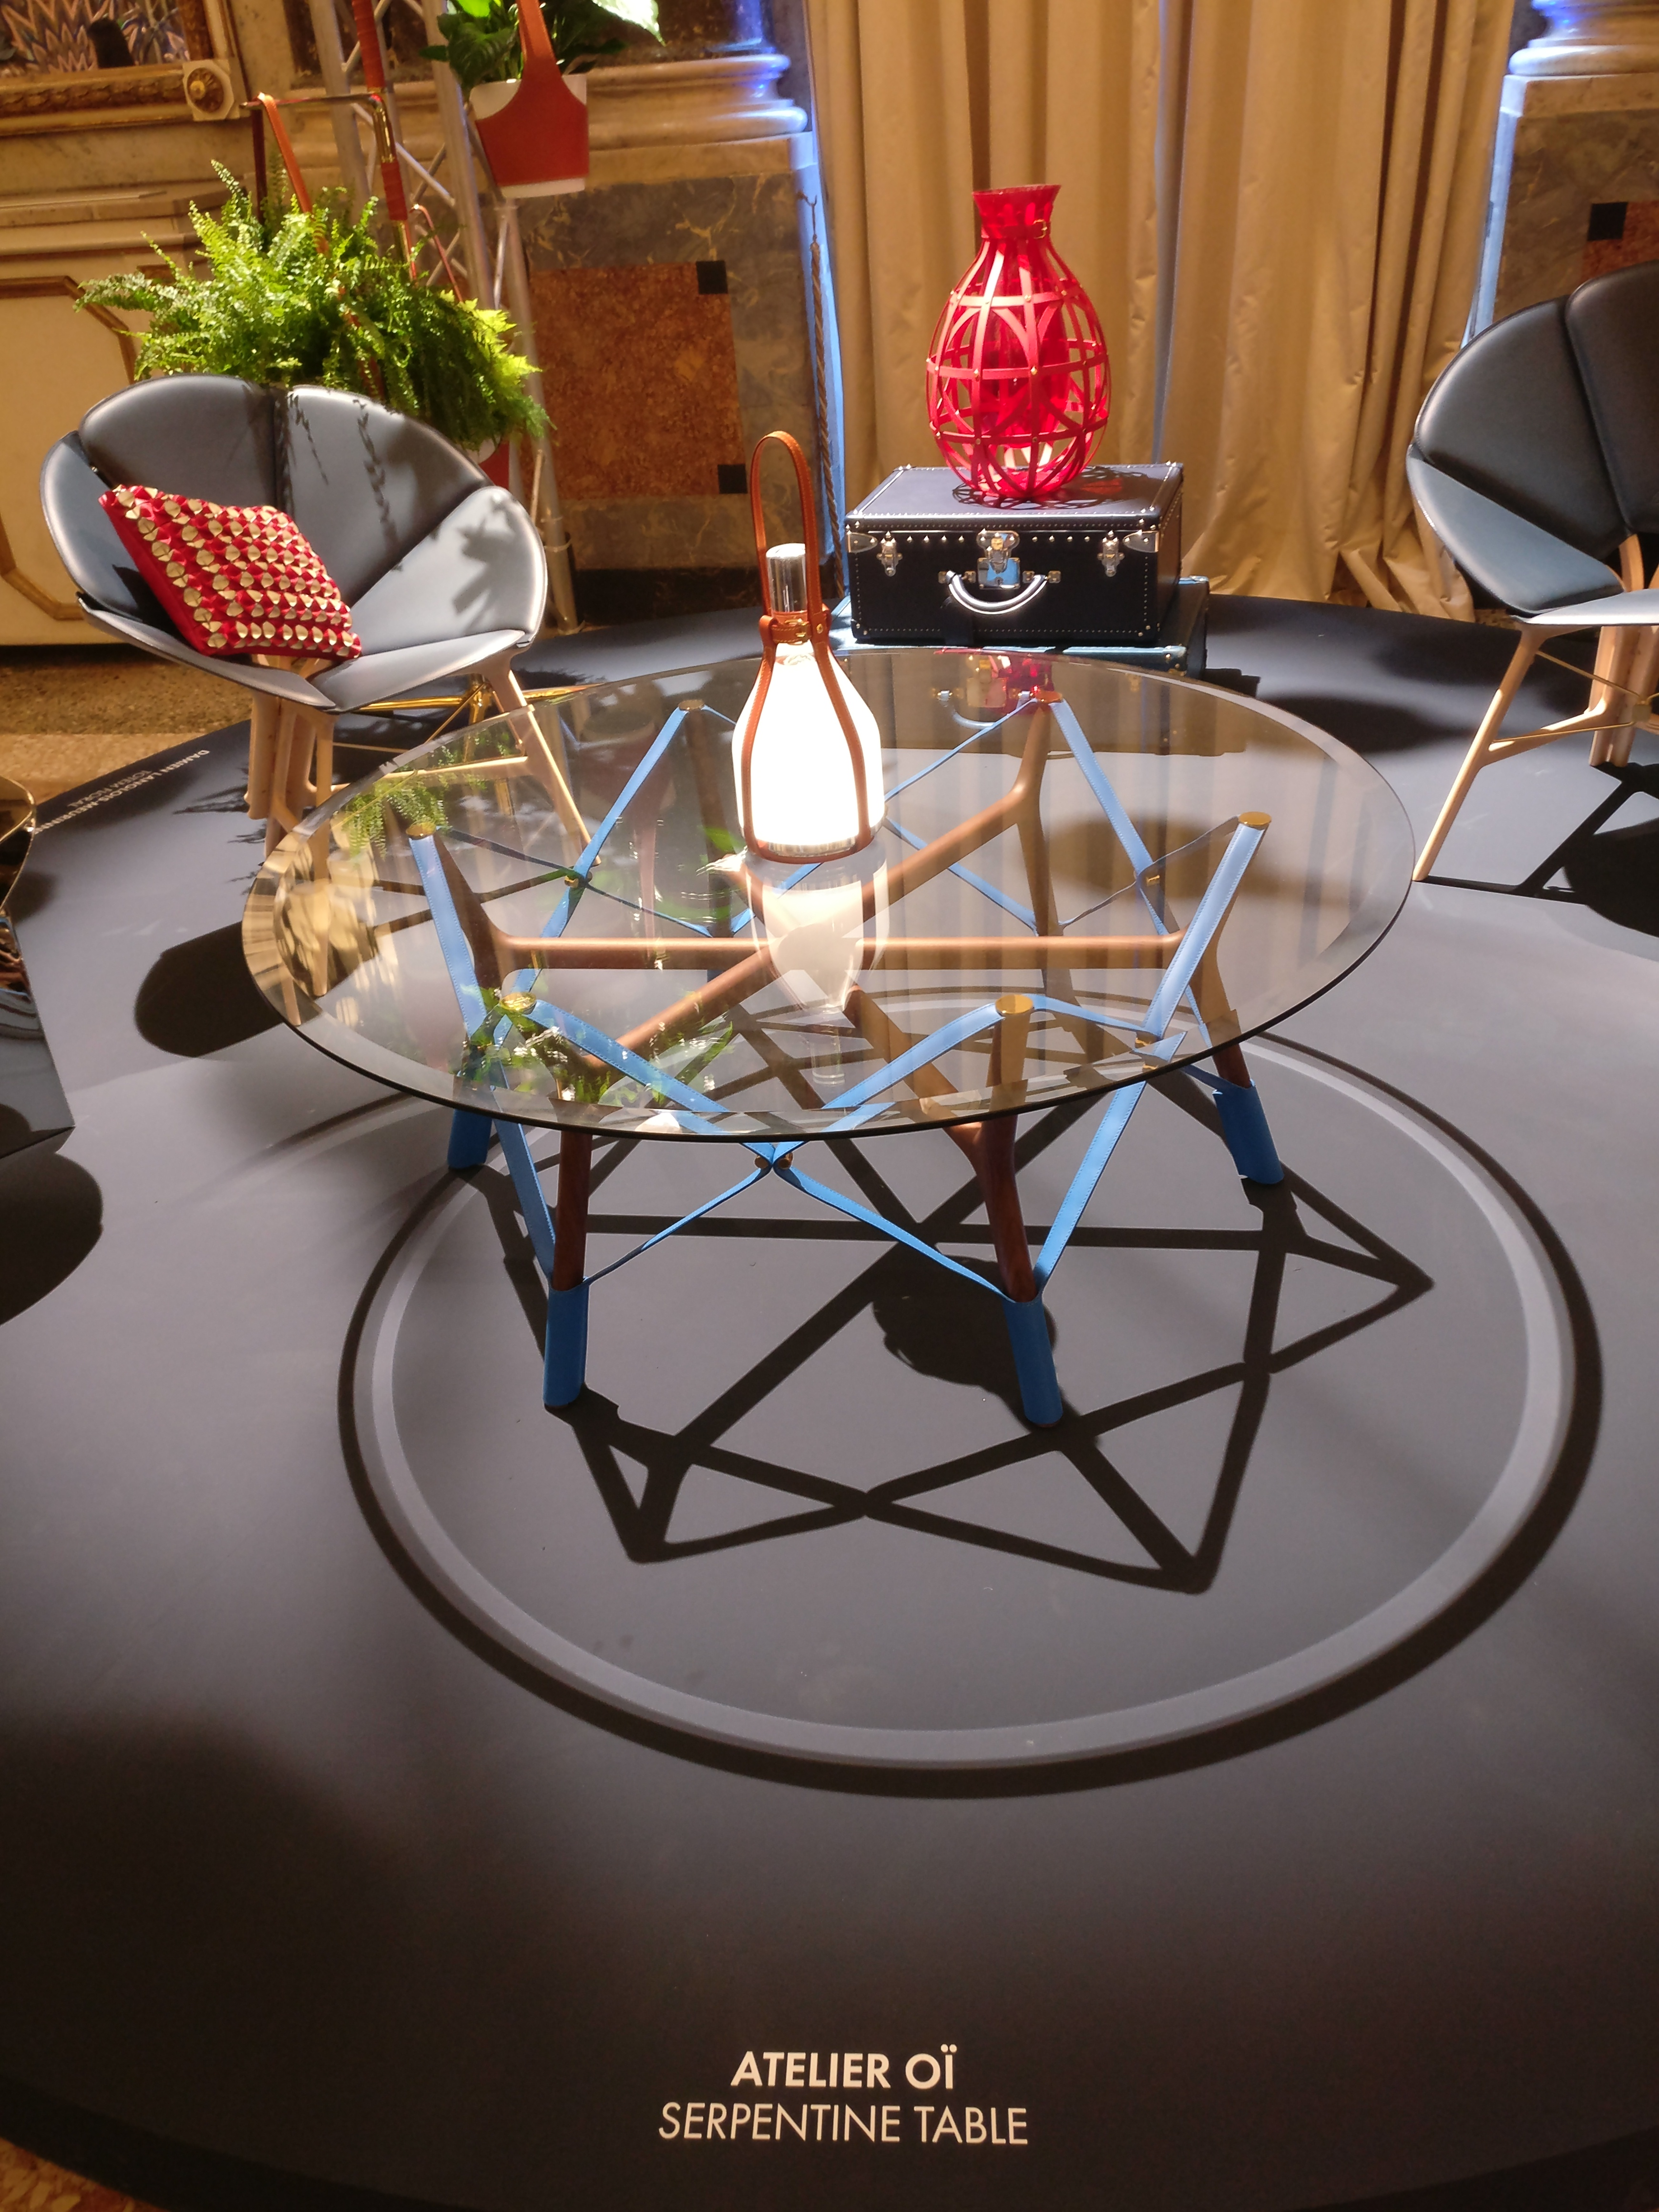 Serpentine Table by Atelier Oi| Louis Vuitton| Objets Nomades | Fuorisalone 2019| STIR